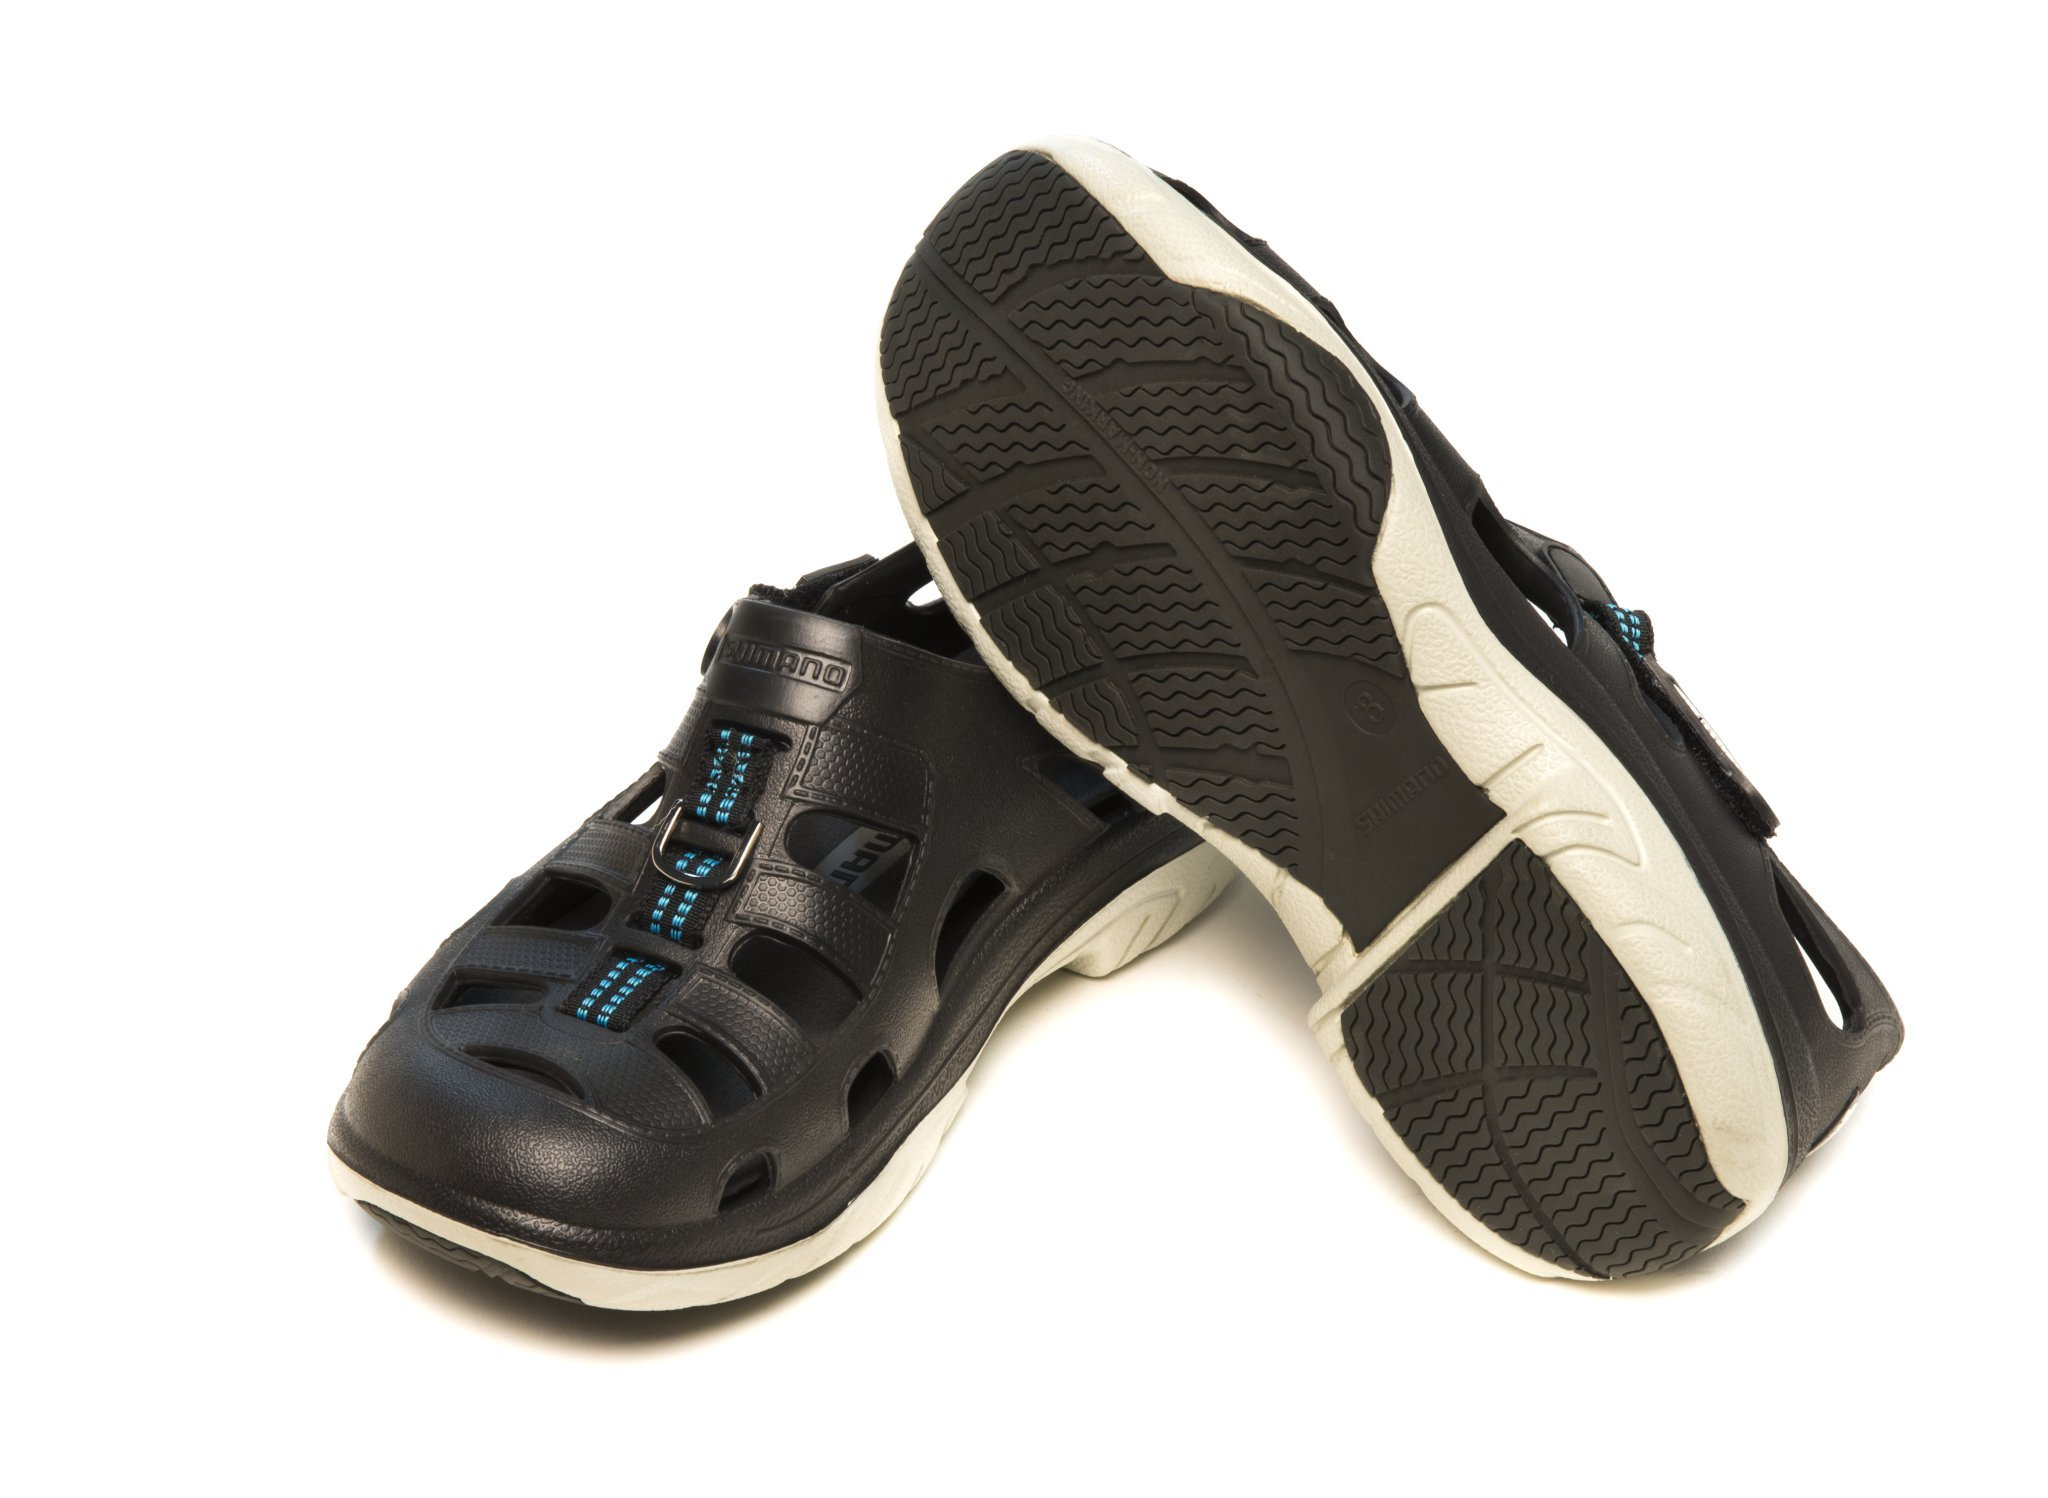 Shimano EVAIR MARINE Fishing Shoes, Size 06, Black by Shimano